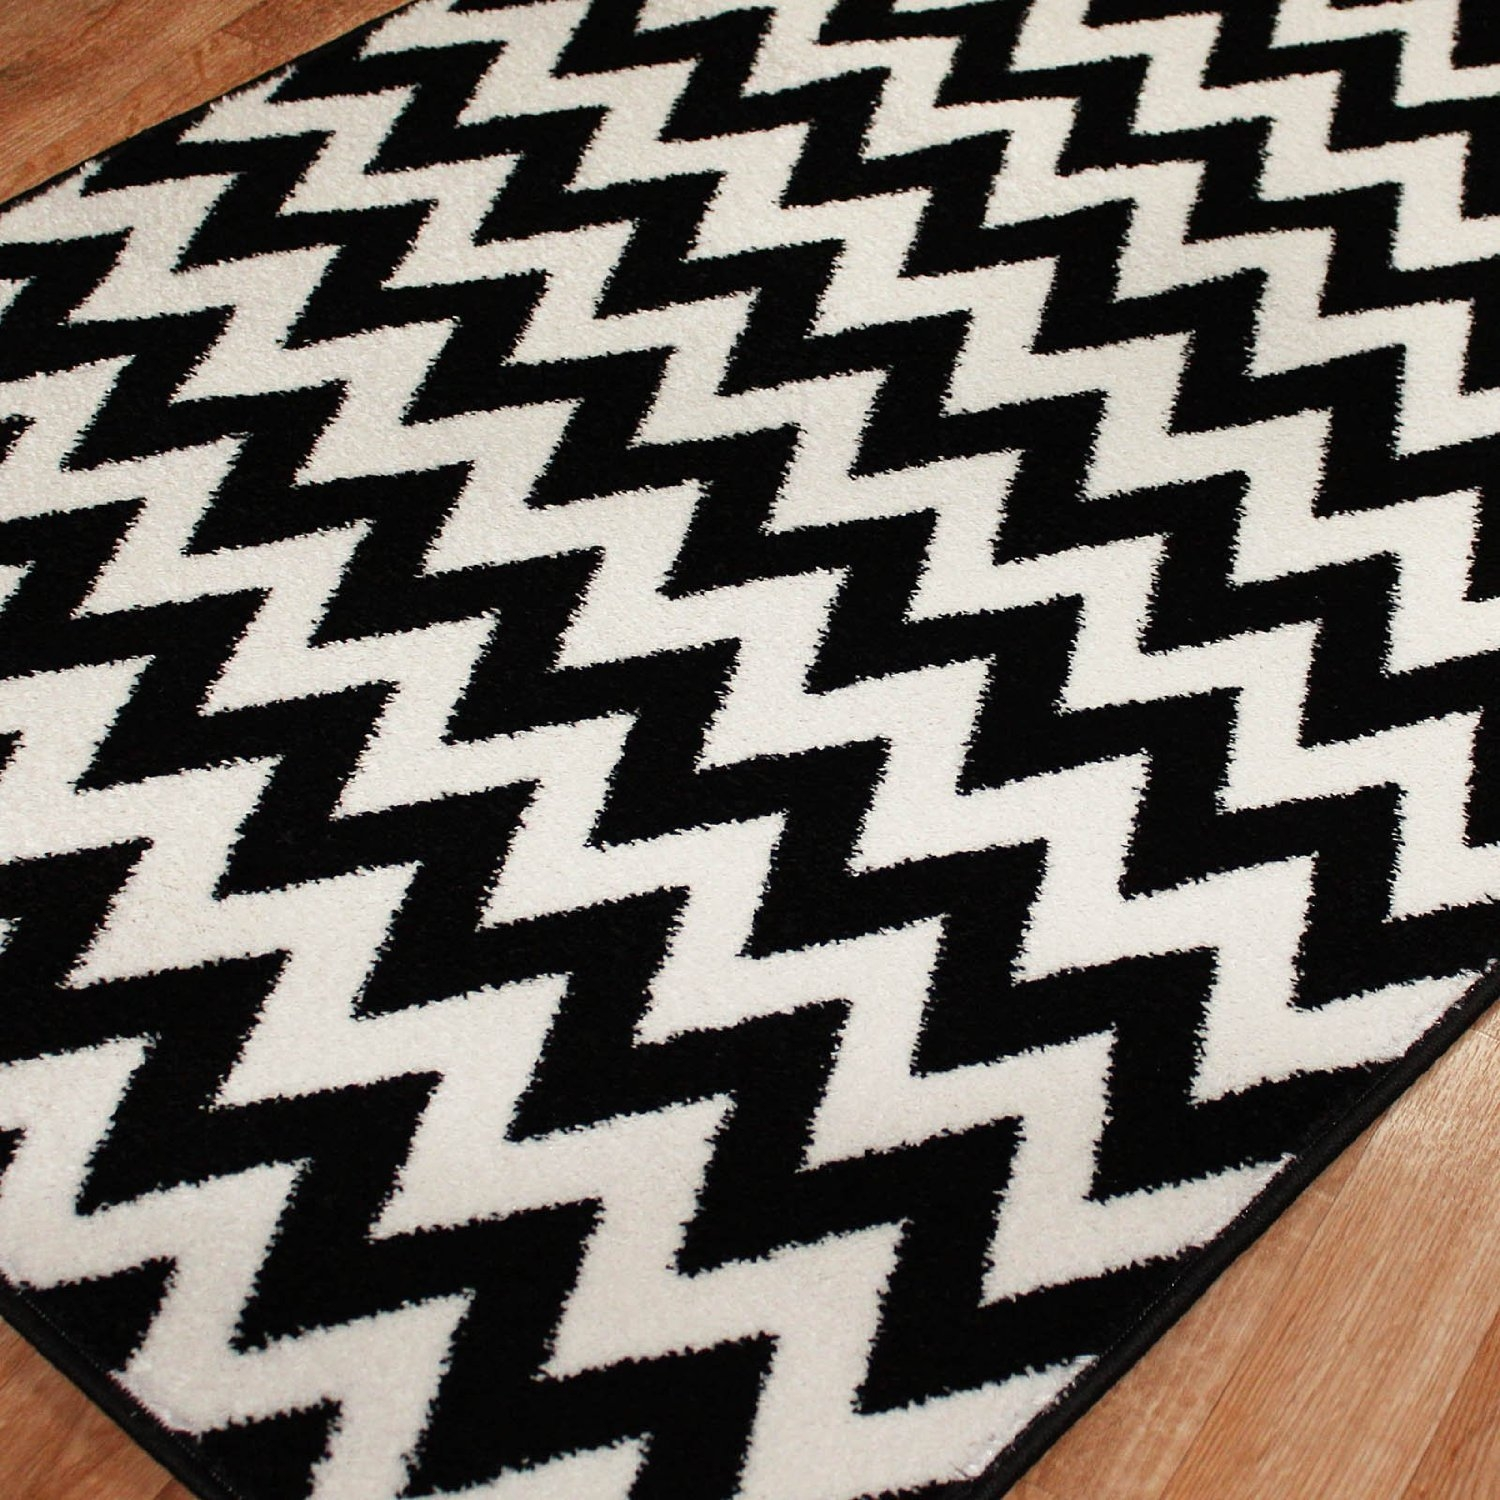 Permalink to Black And White Chevron Bathroom Rugs